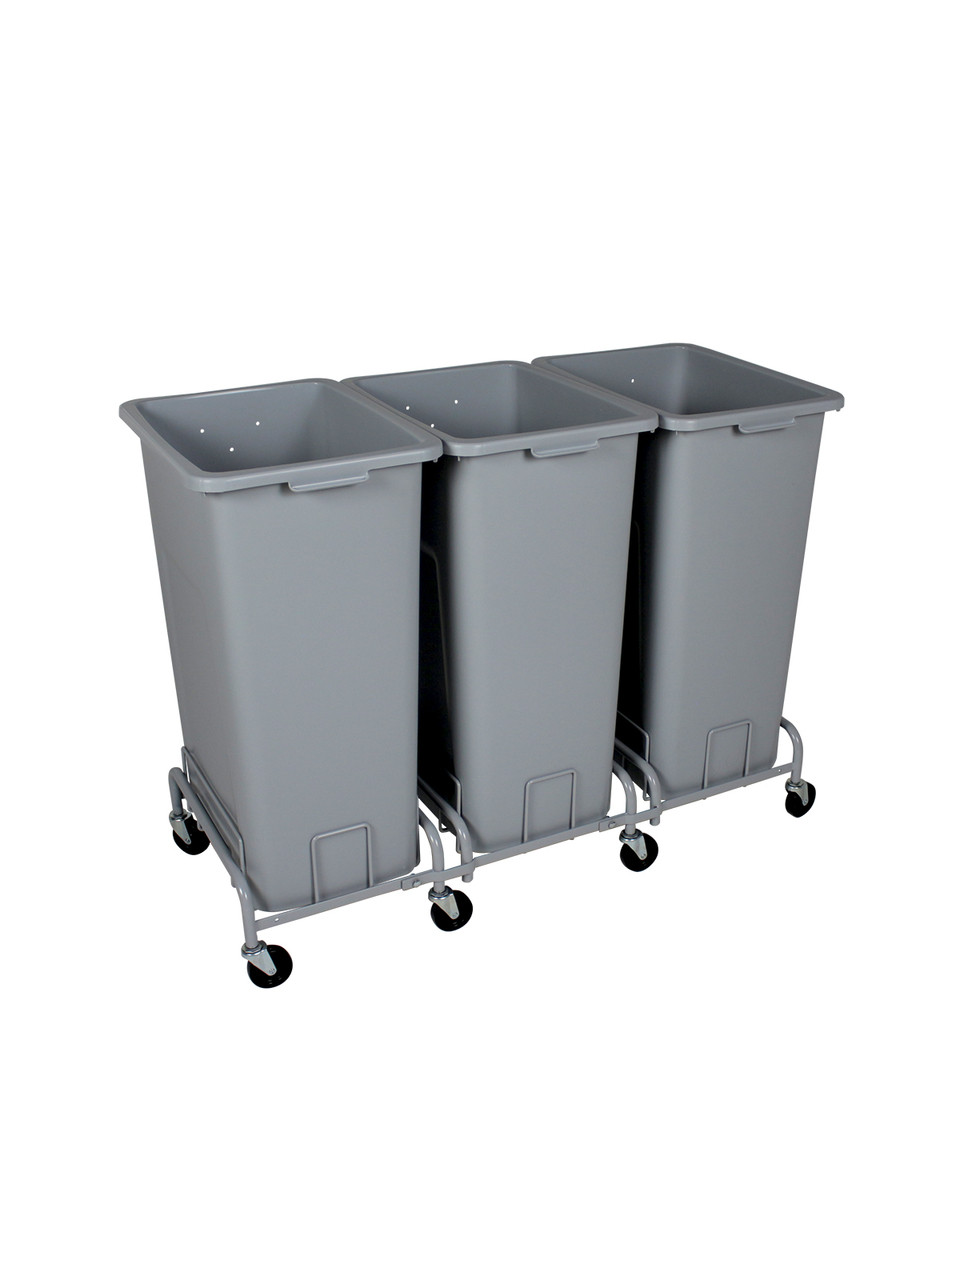 72 Gallon Plastic XL Trash Cans with Wheels Combo (4 Color Choices)